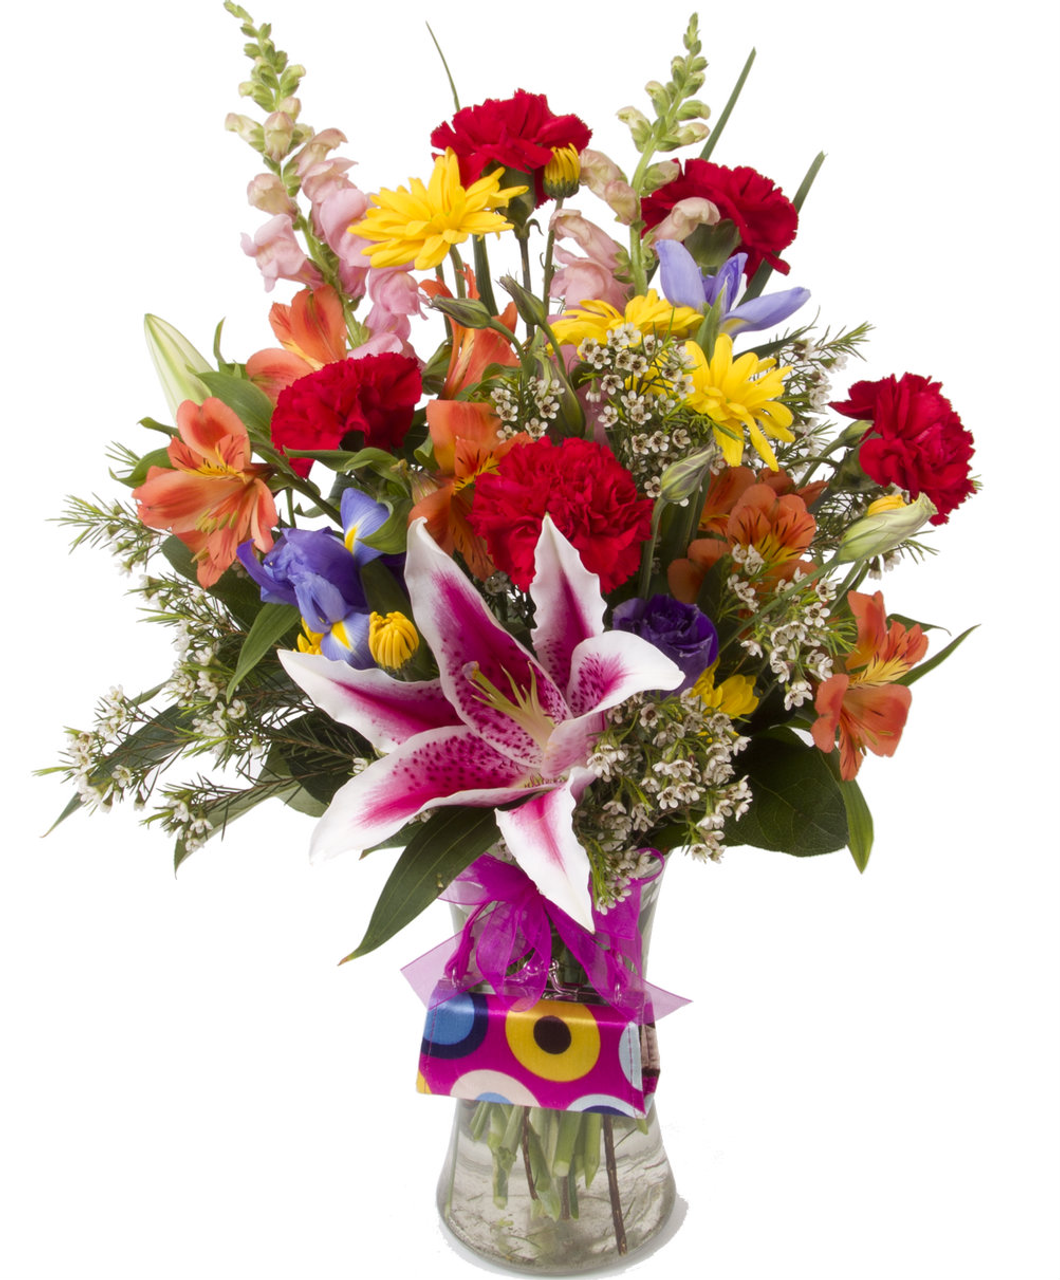 Soderbergs Exclusive Lake Of The Isles Garden Bouquet Wfree Gift